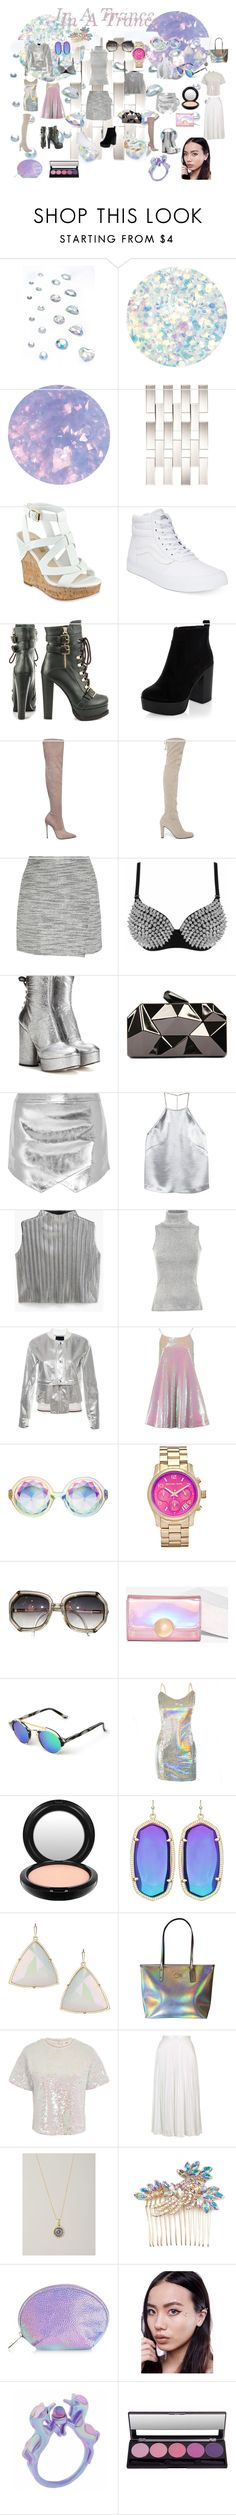 """""""In A Trance"""" by zenobiaourania ❤ liked on Polyvore featuring In Your Dreams, Deborah Lippmann, SpaRitual, Amara, GUESS, Vans, Luichiny, New Look, Le Silla and Stuart Weitzman"""